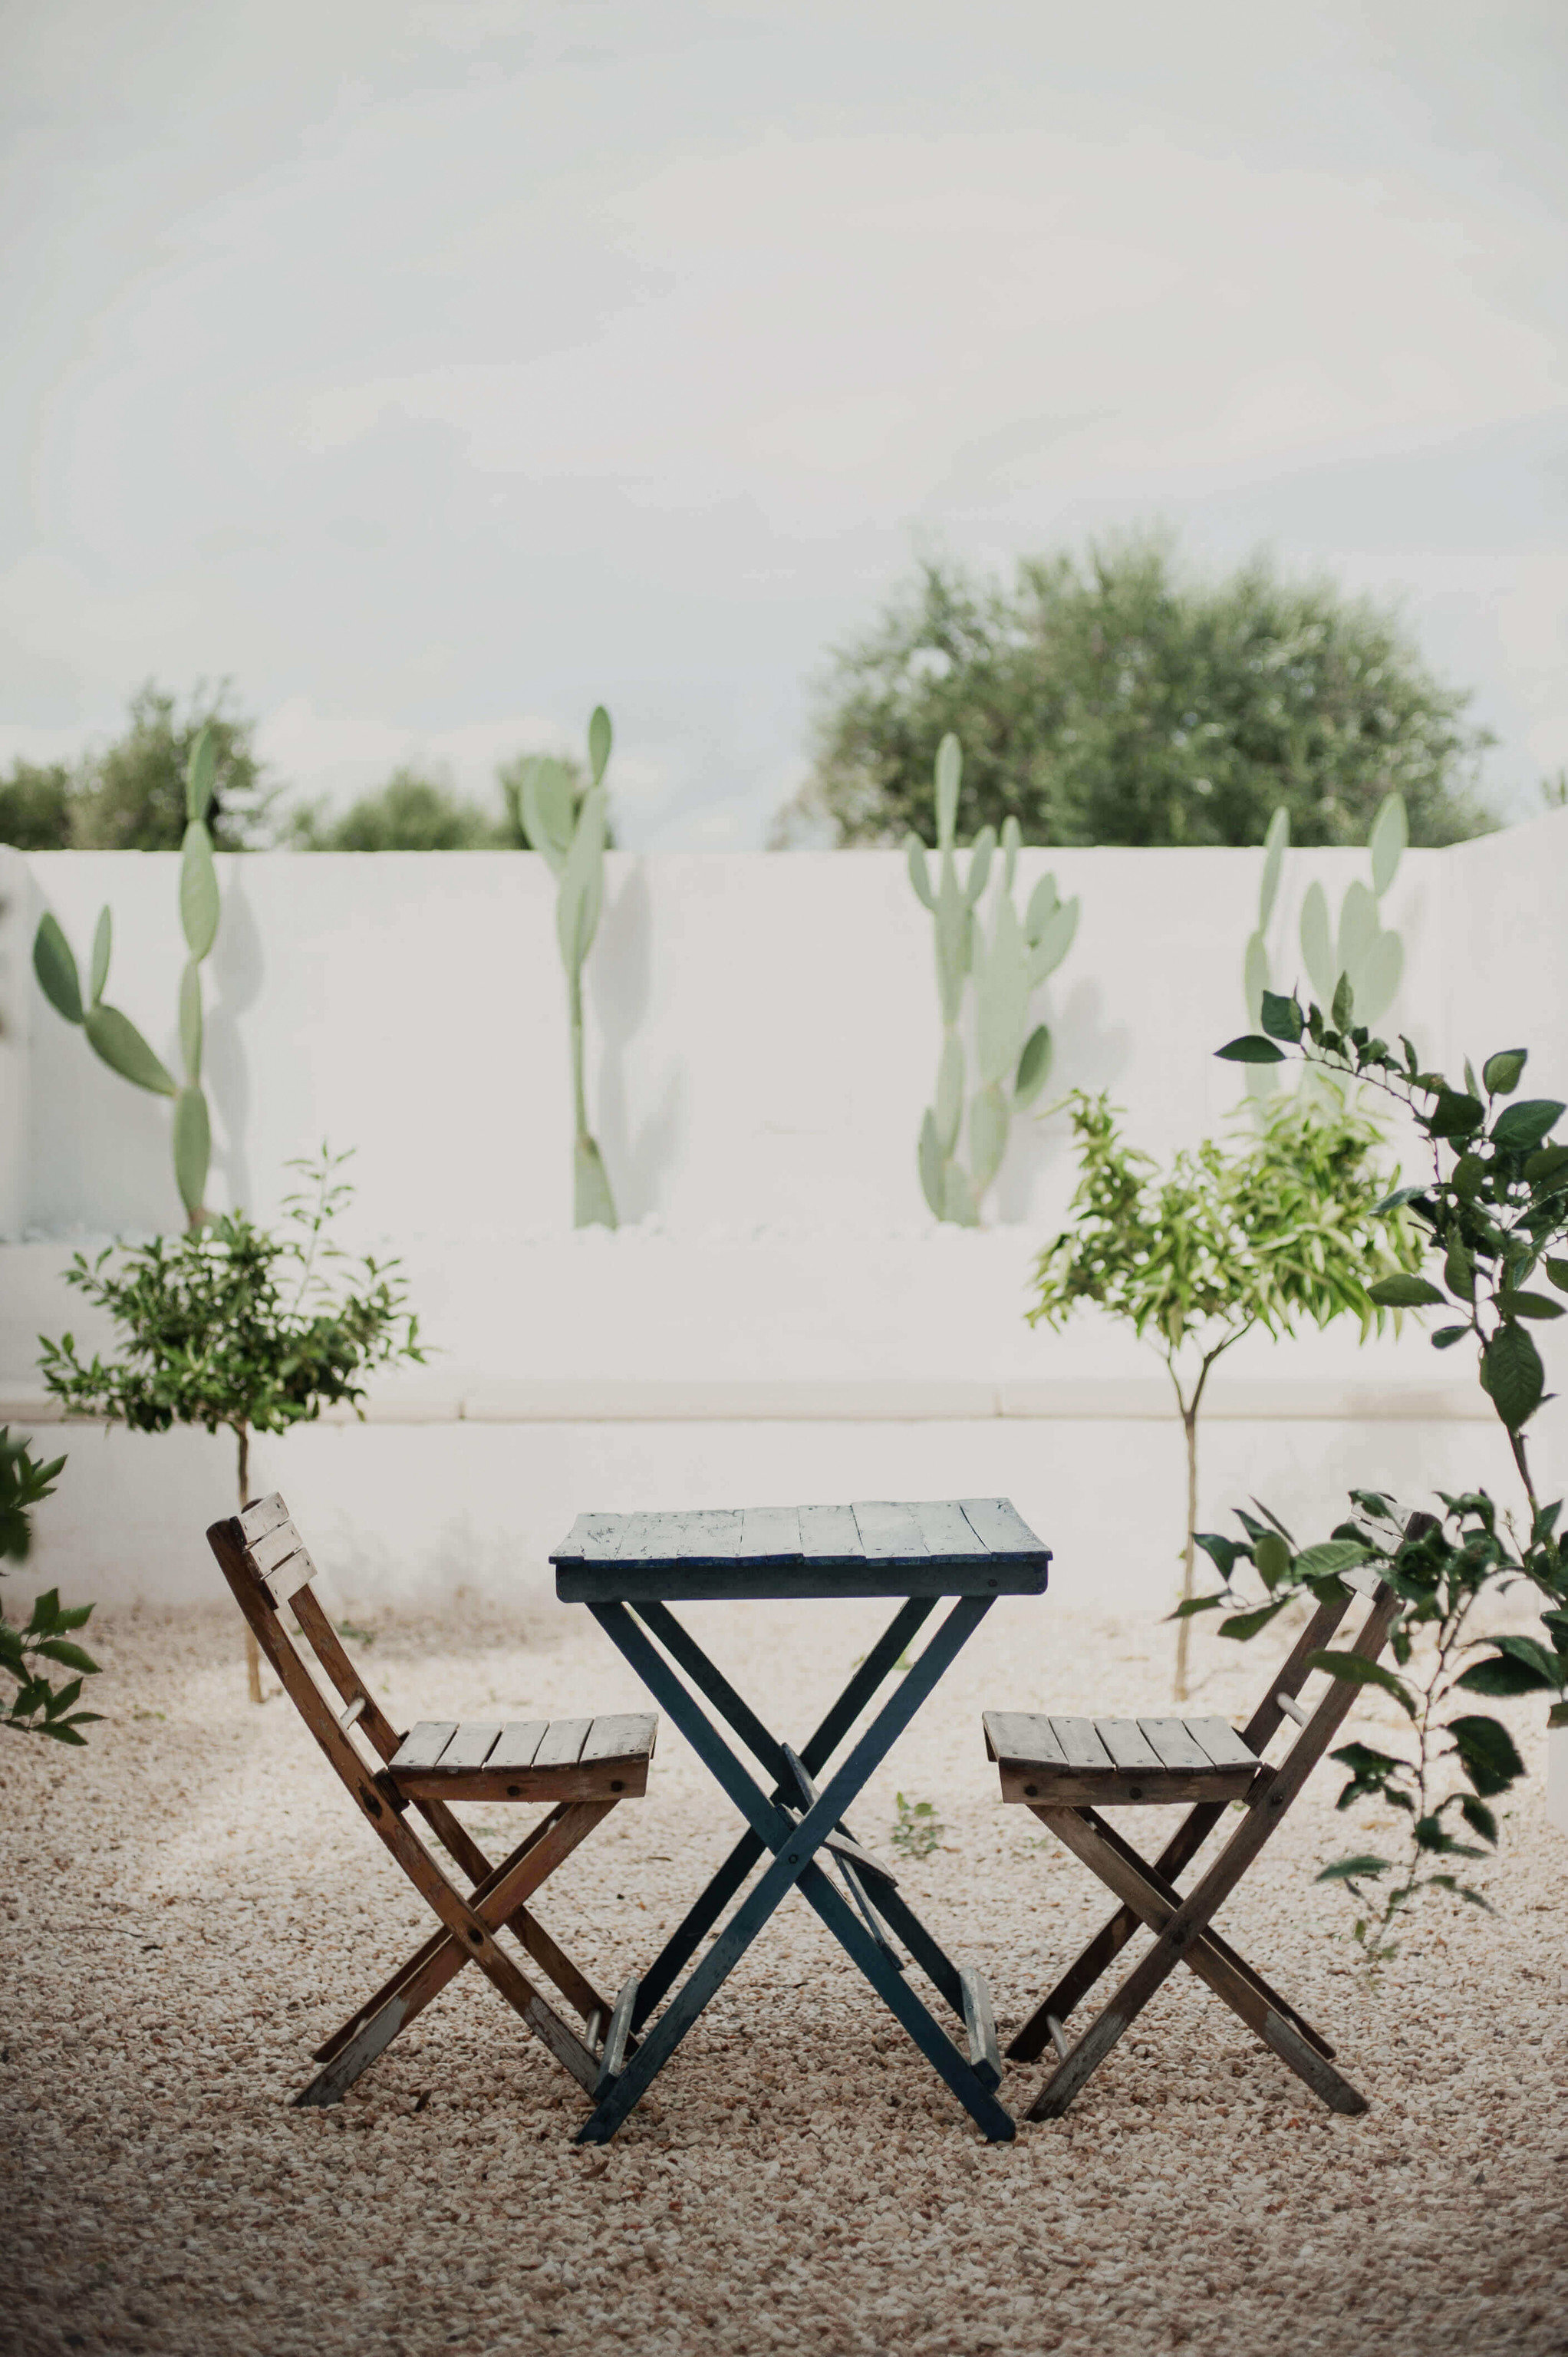 Boutique Hotels Hotels Trip Ideas outdoor furniture table plant tree chair outdoor furniture branch set several dining table